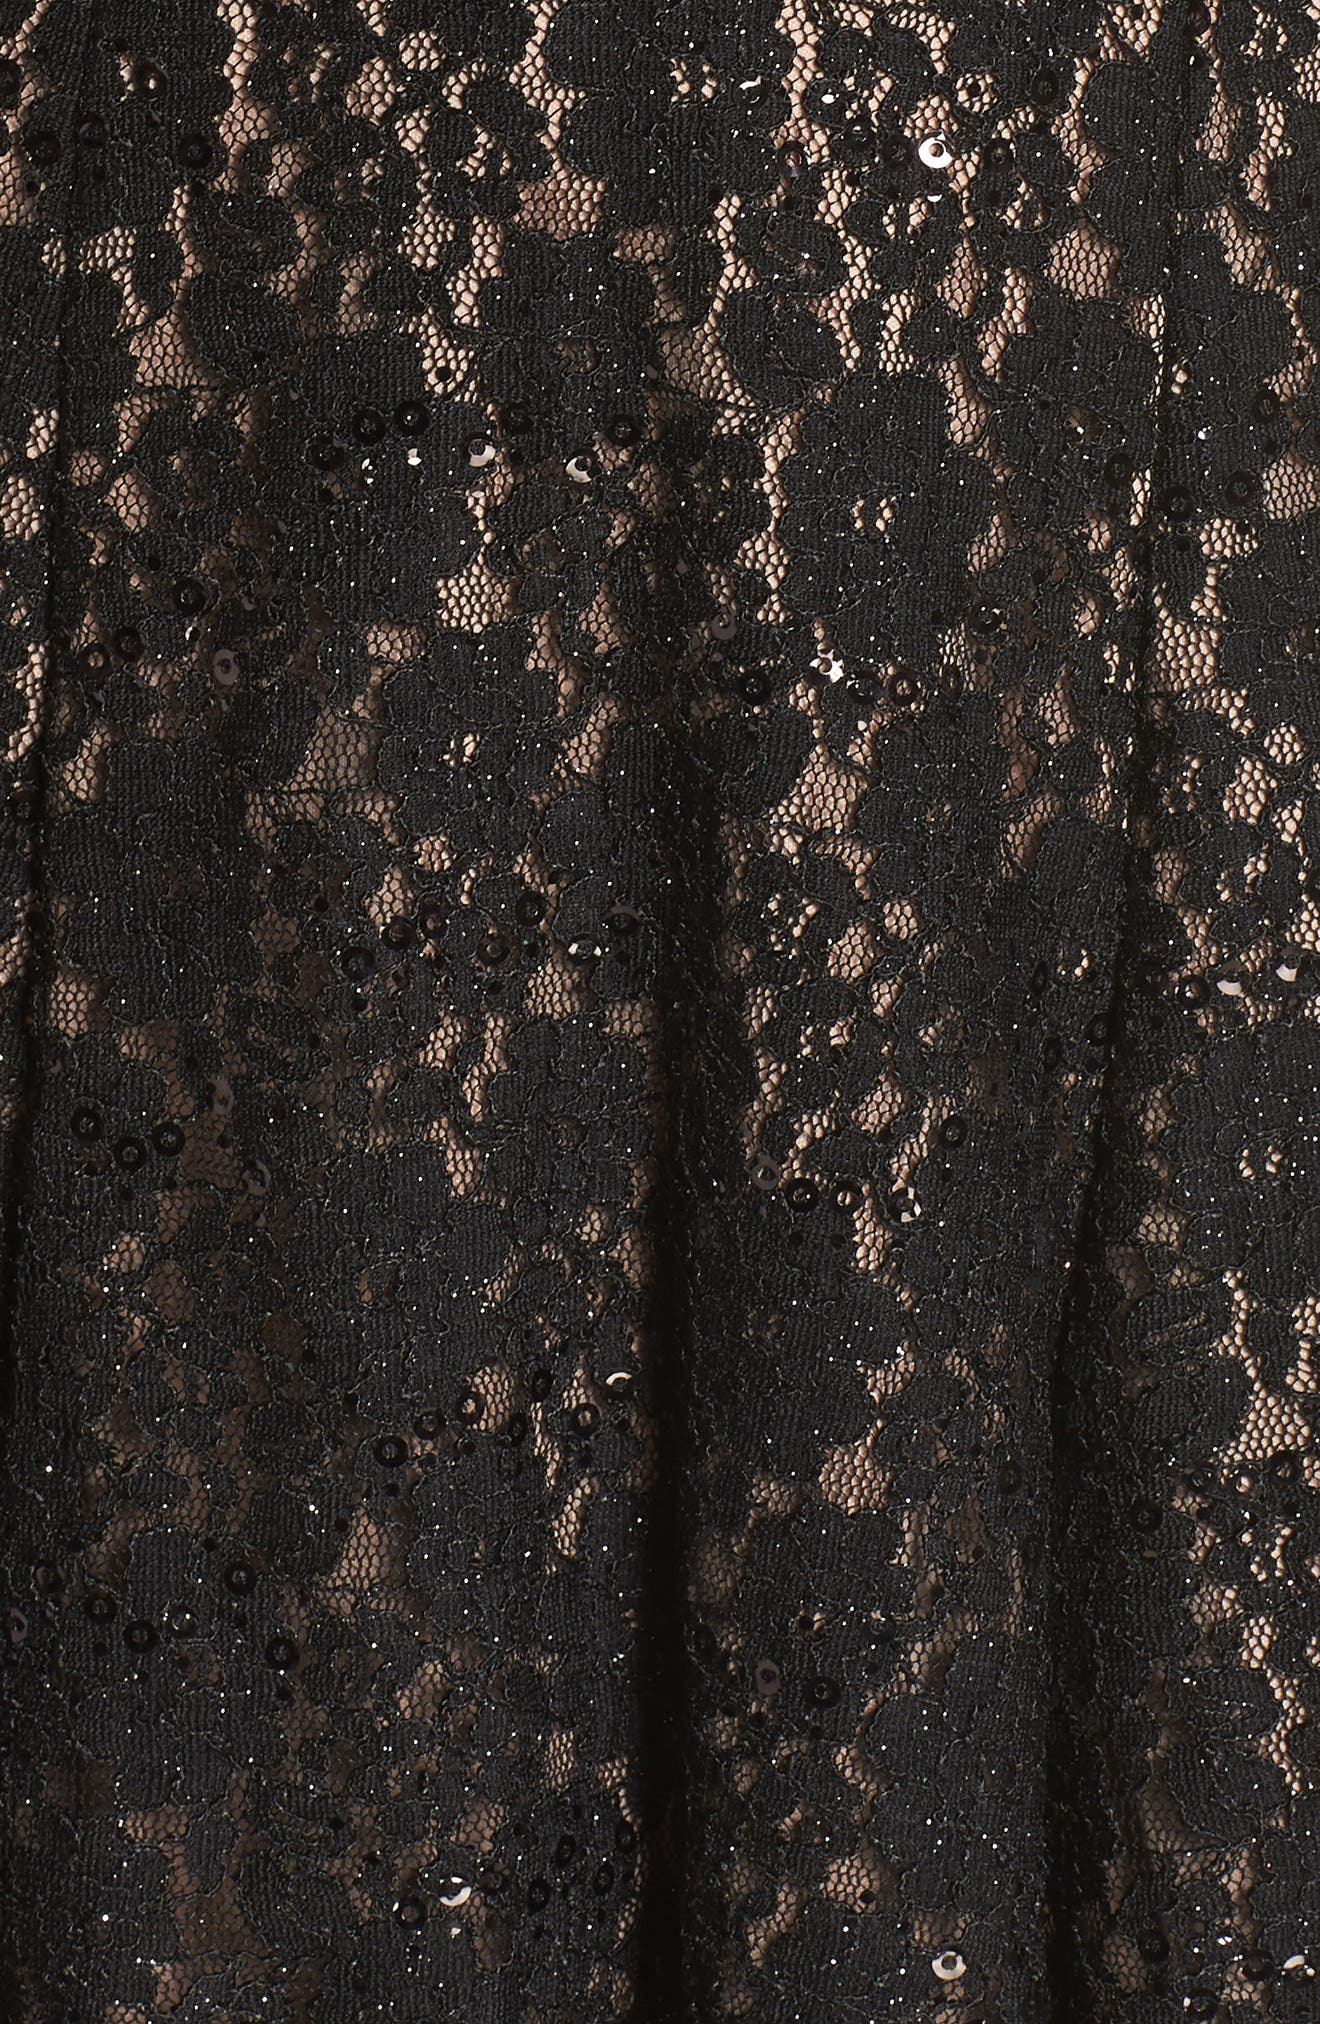 MORGAN & CO., Sheer Inset Lace Fit & Flare Dress, Alternate thumbnail 6, color, BLACK/ NUDE